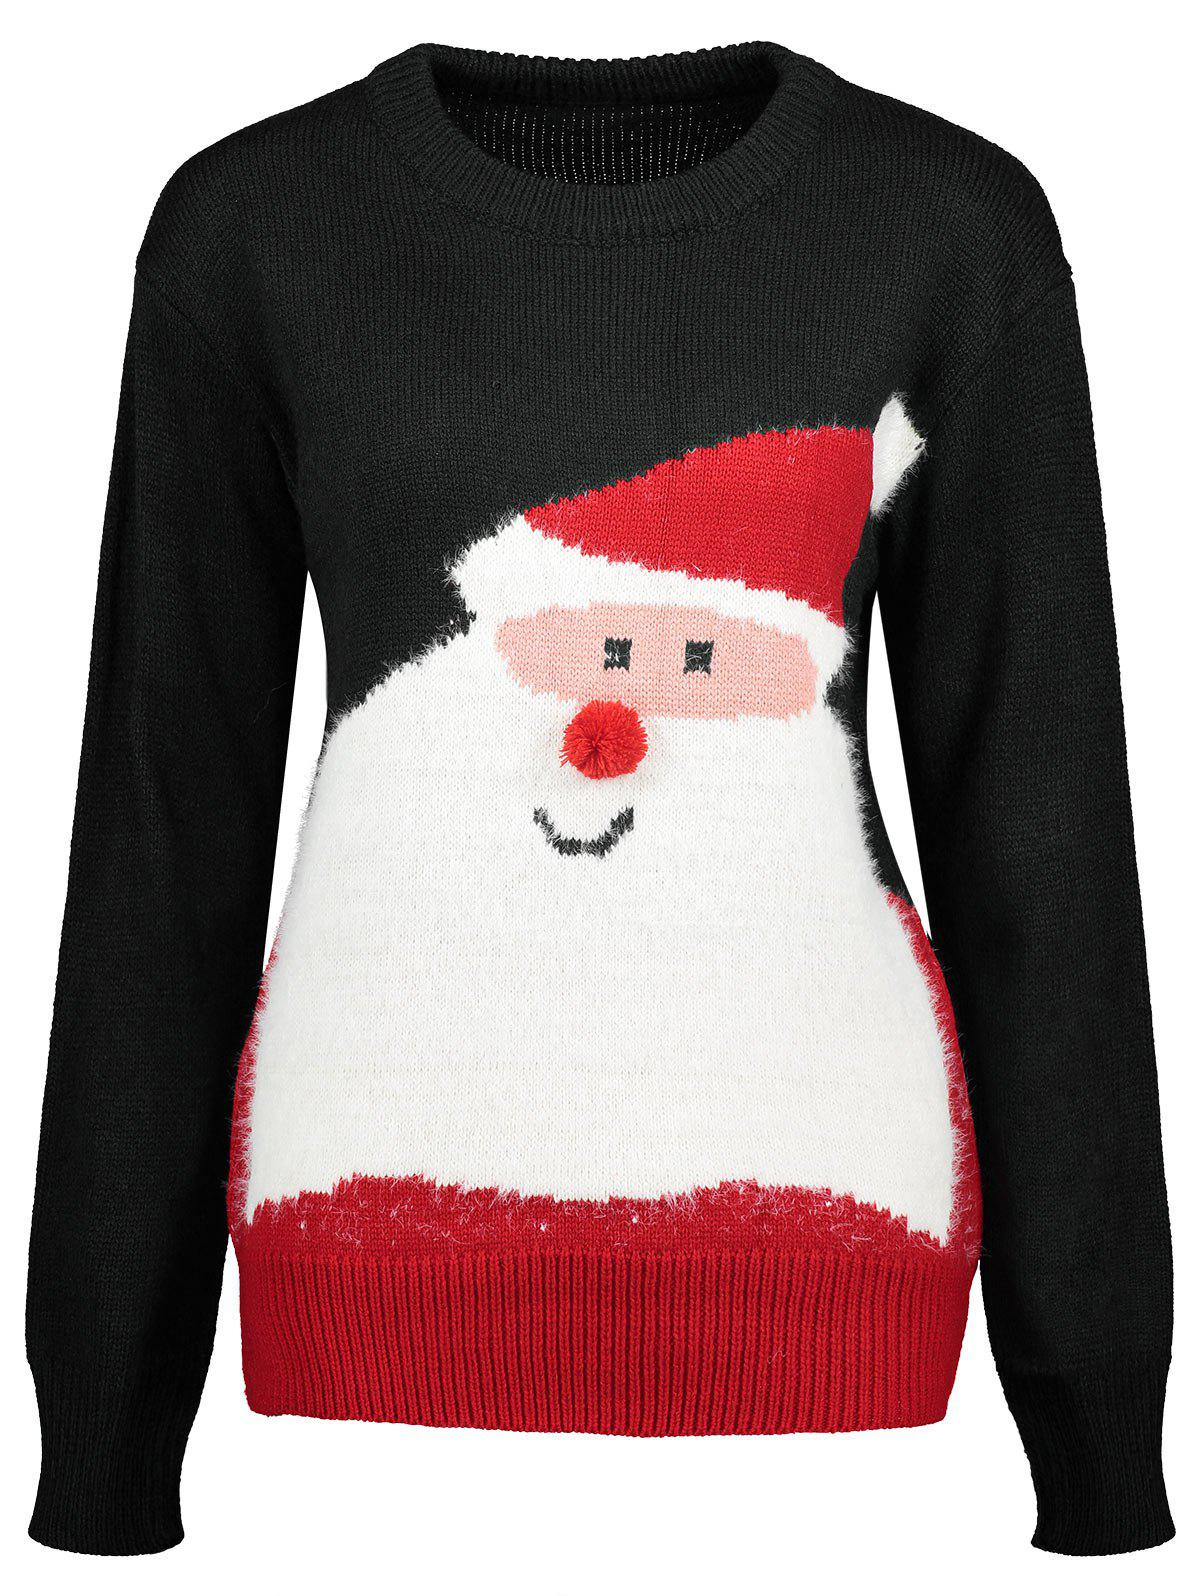 Santa Claus Print Crew Neck Christmas Sweater - BLACK ONE SIZE